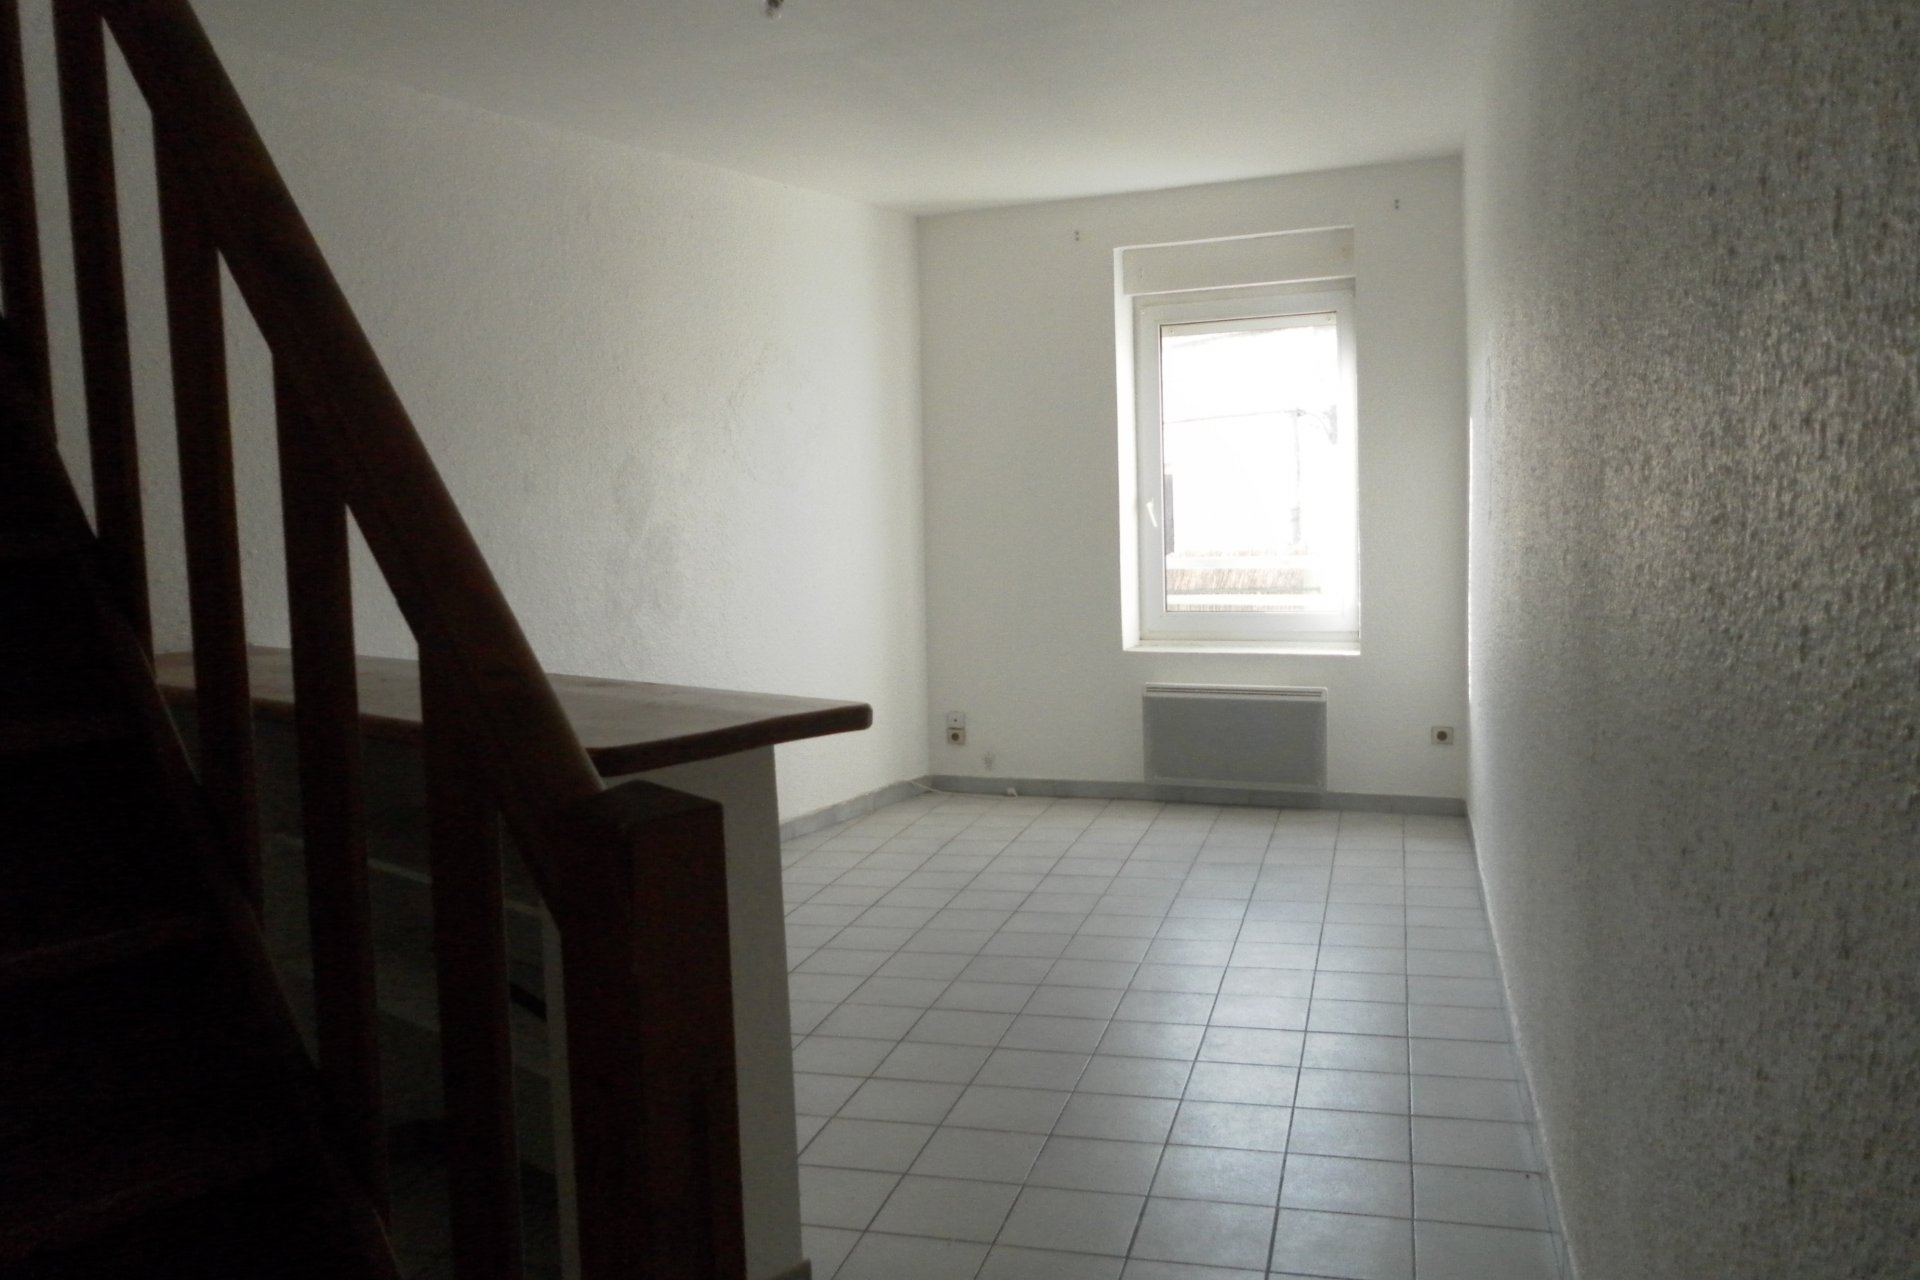 Location Duplex - Sorgues